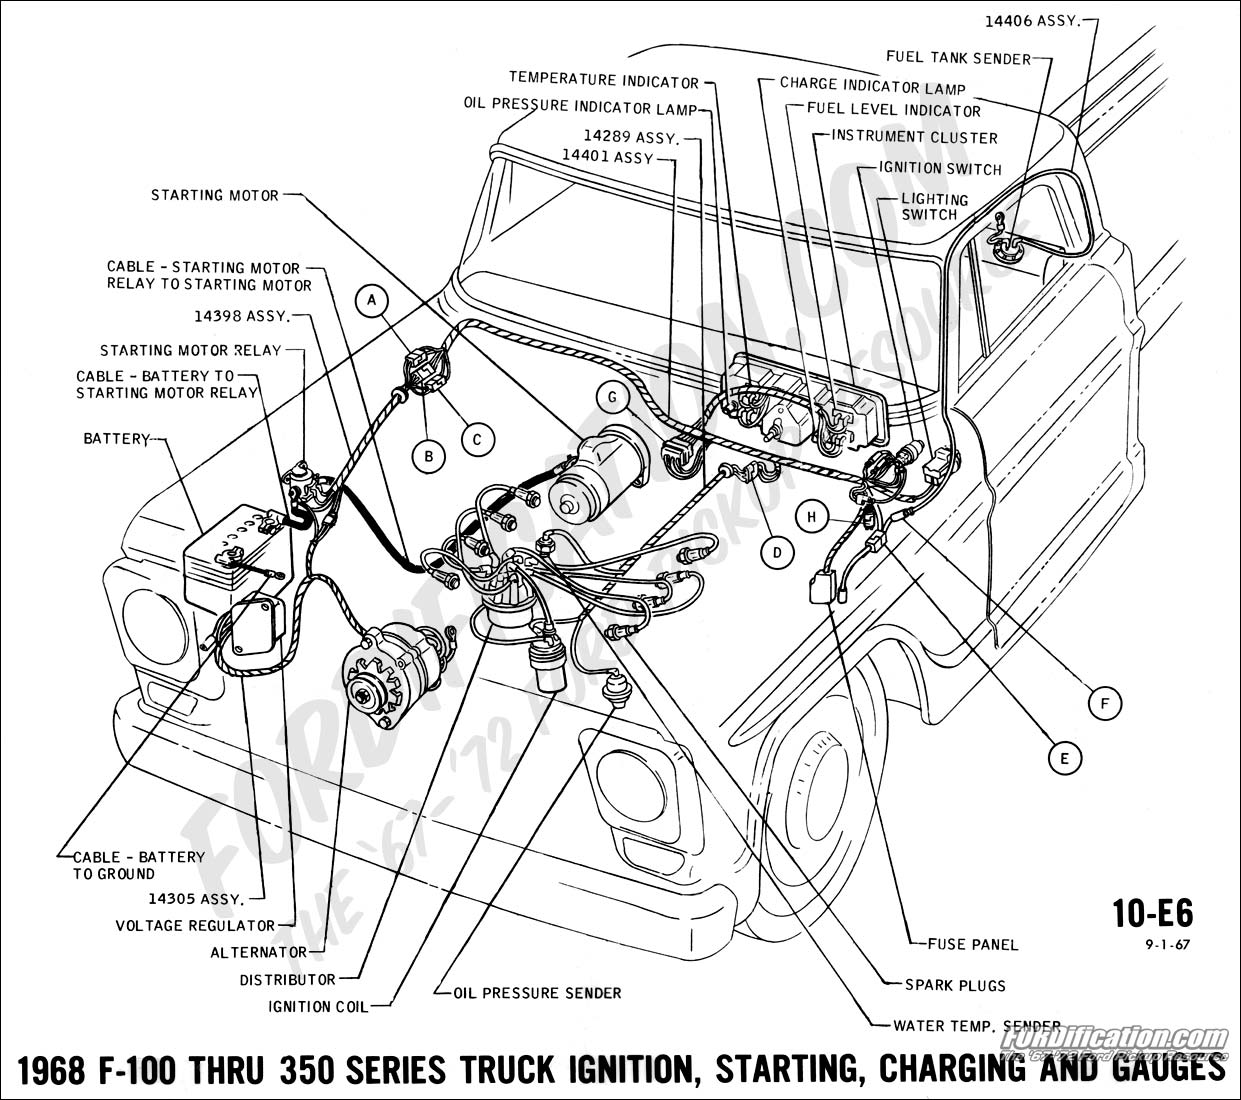 Gm Connectors In Fuse Box 2002 Chevy Luv Wiring Diagram Detailed Diagrams 2004 Classic 1968 Truck